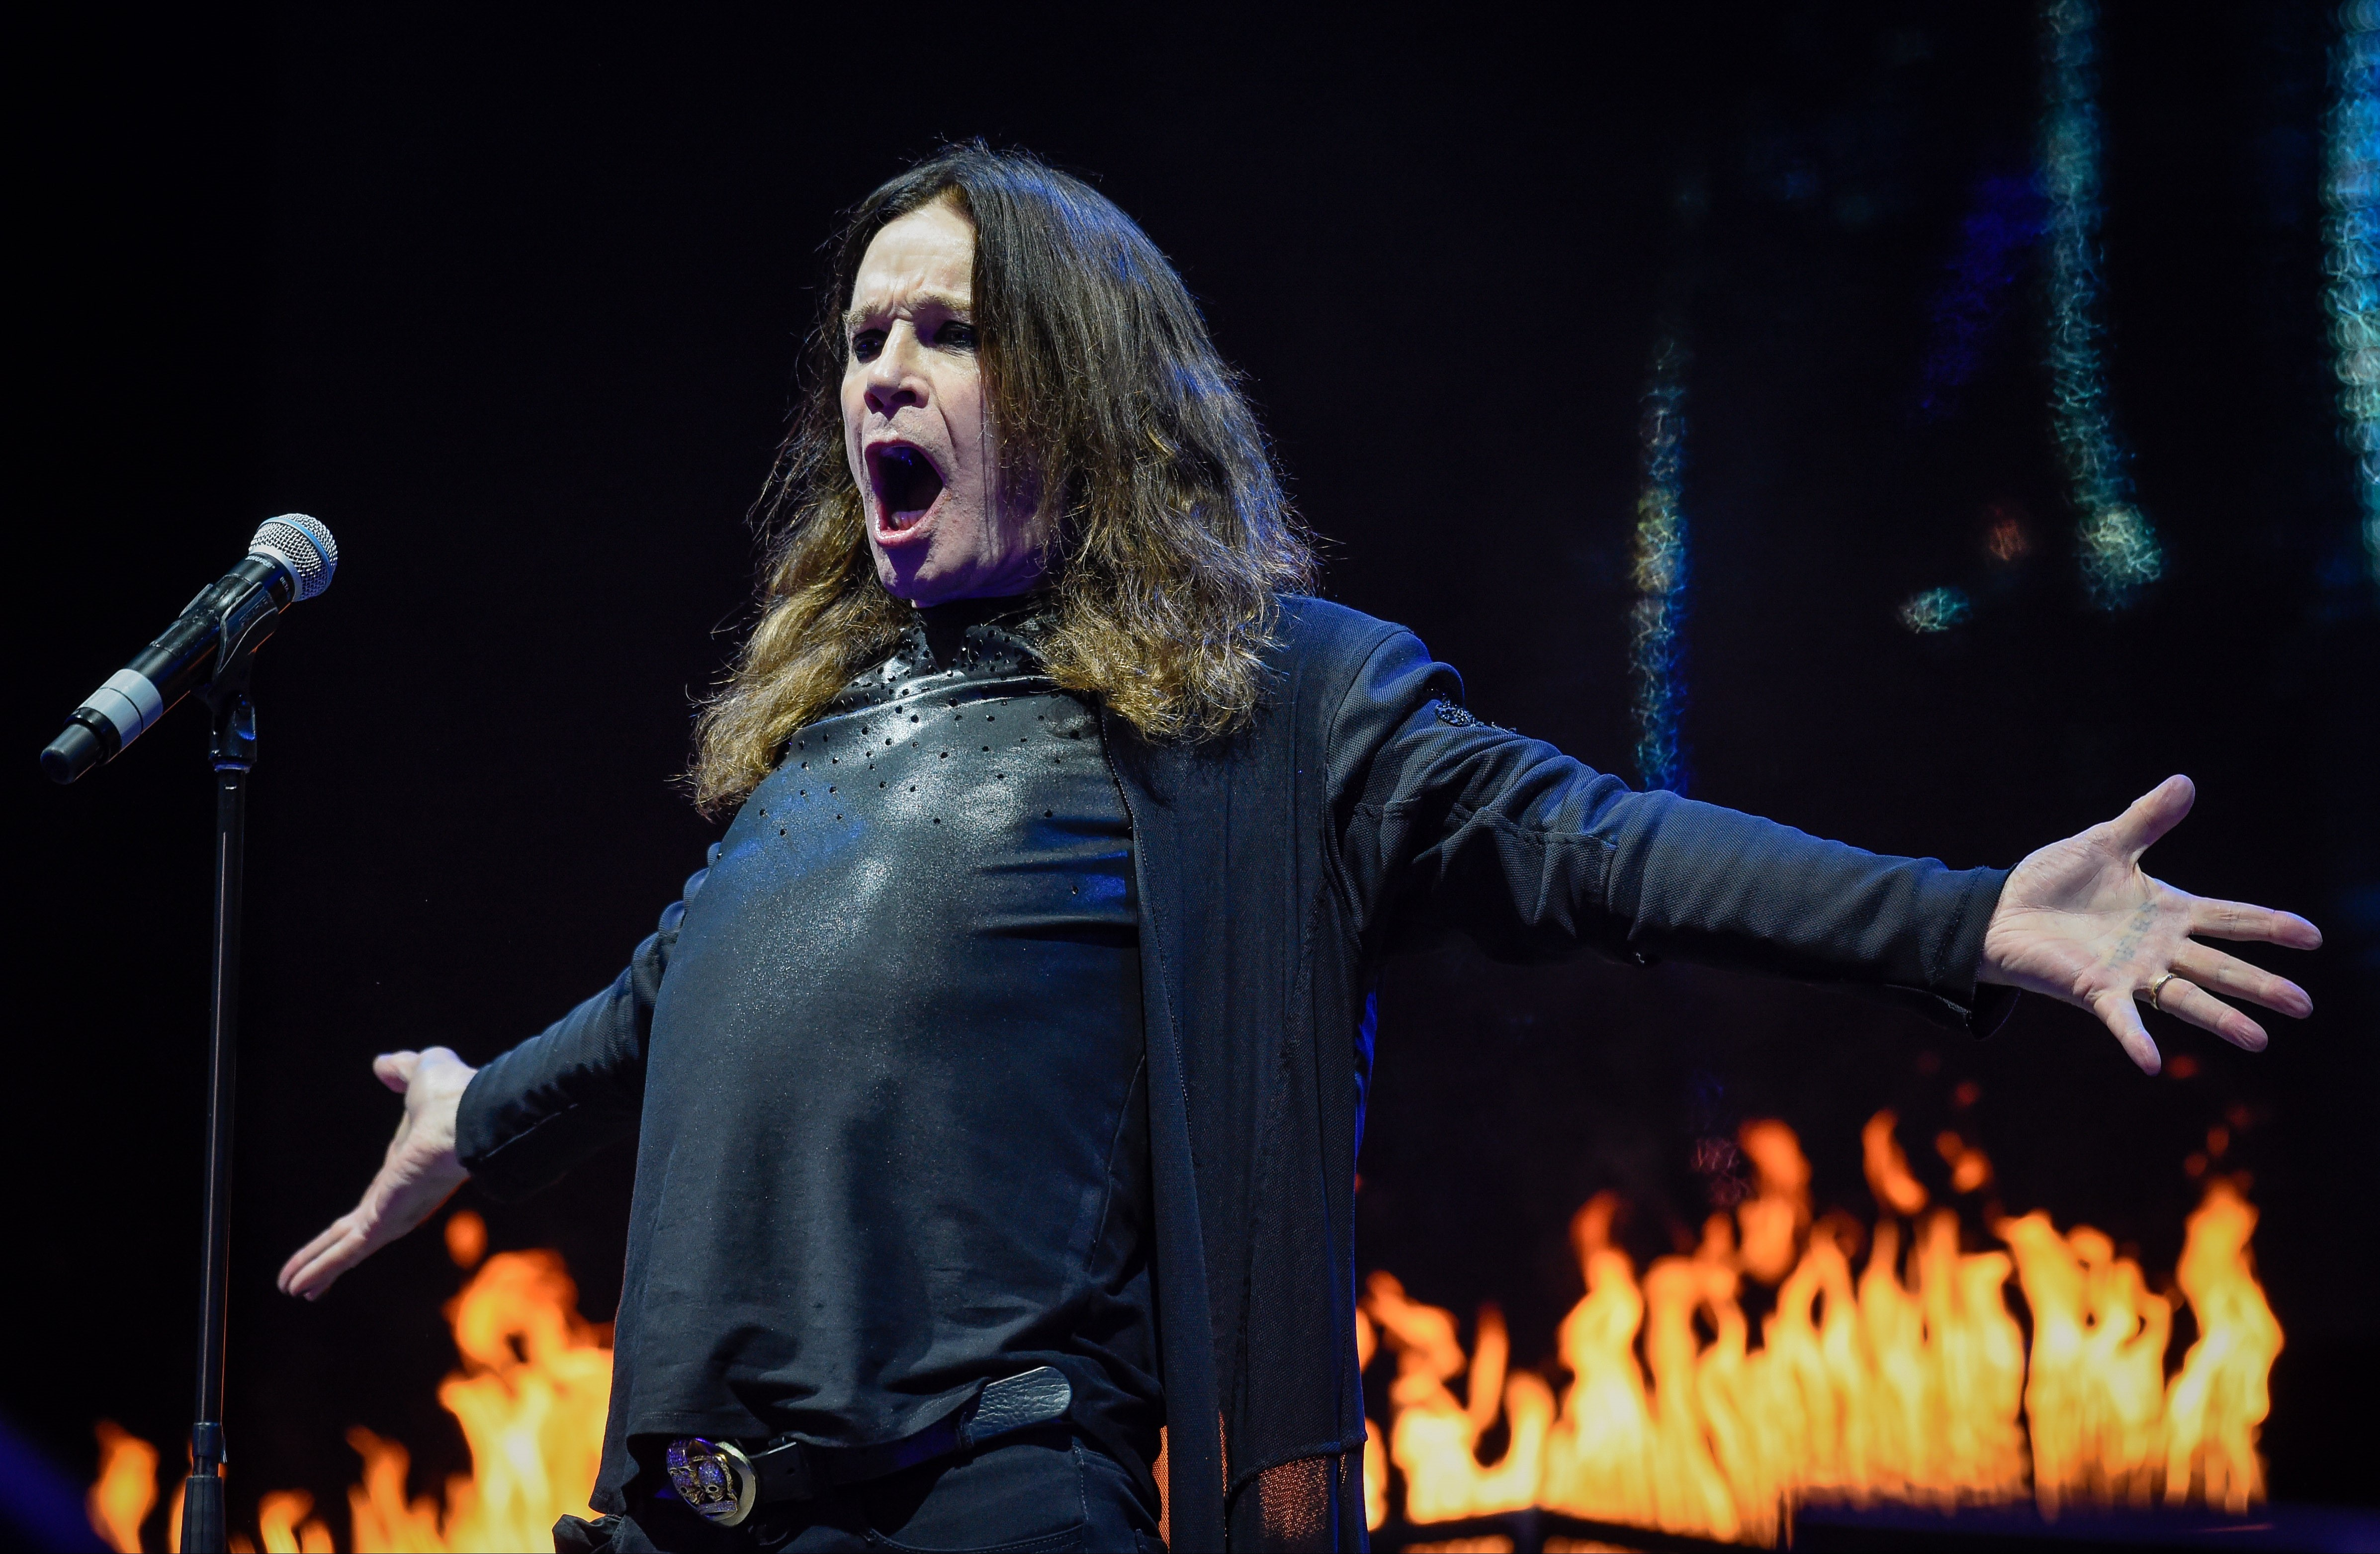 Ozzy Osbourne thinks outer space sounds boring